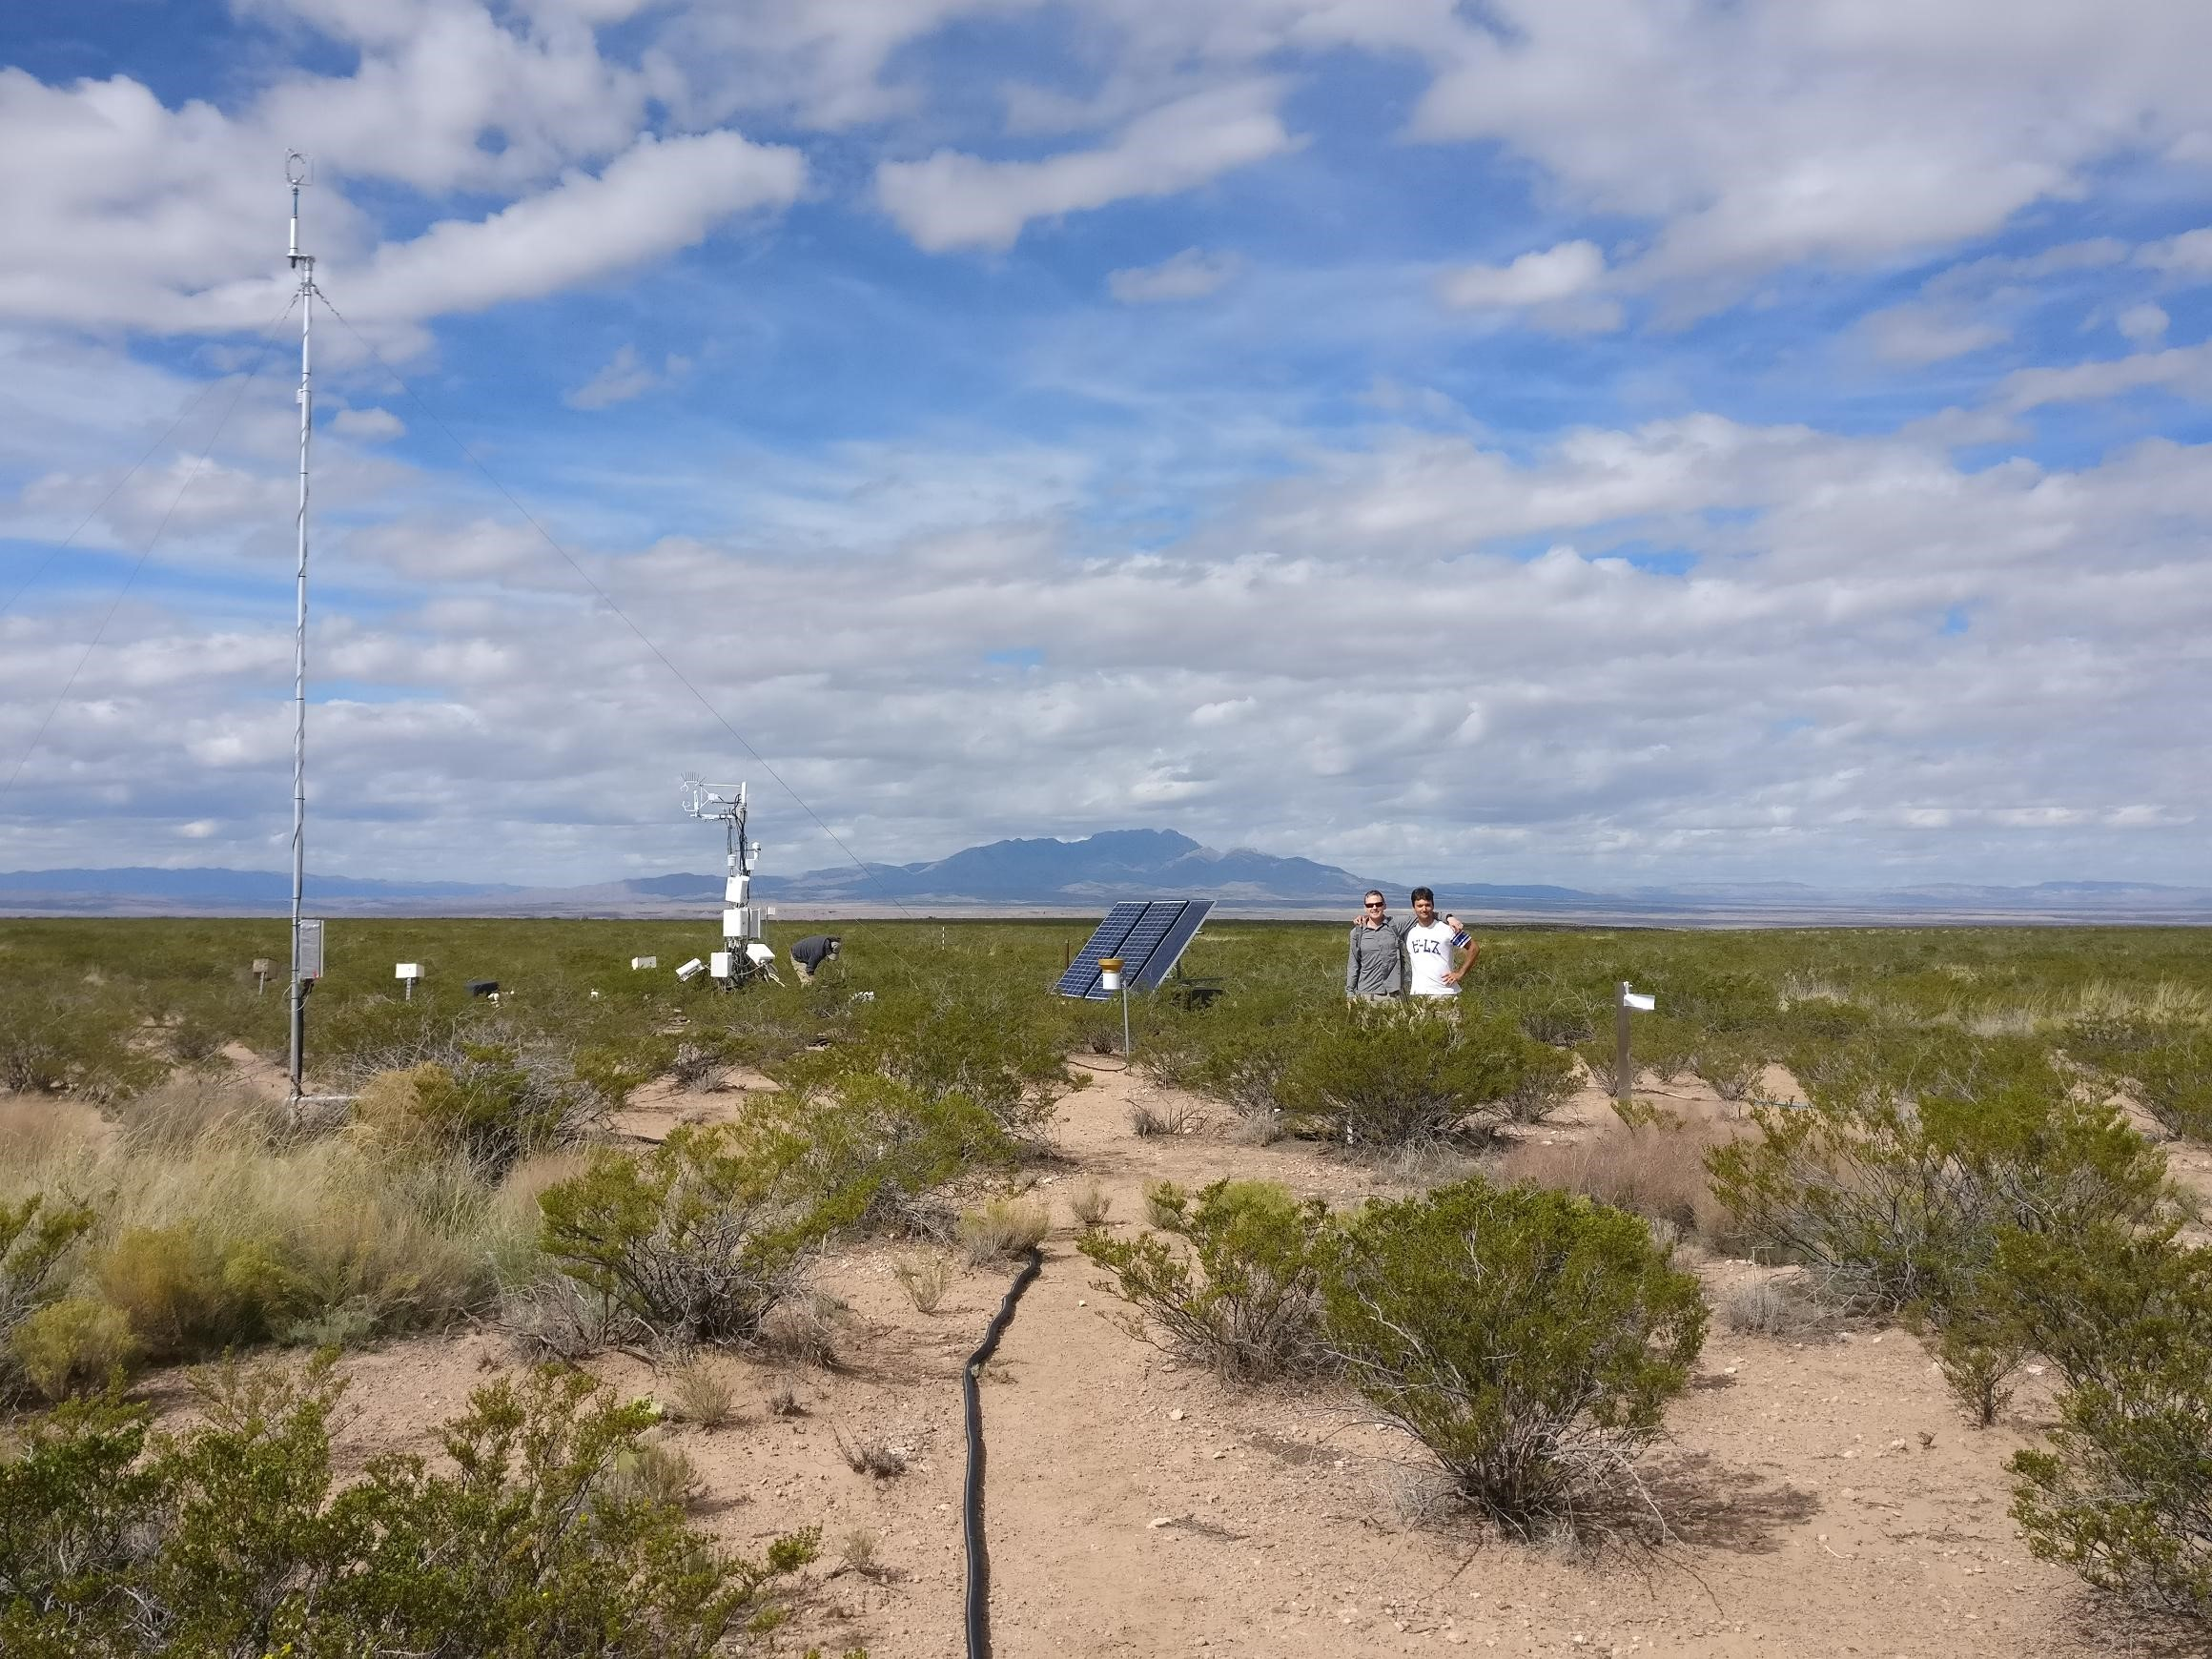 Andrew Cunliffe and Fabio Boschetti completing the drylands Eddy Covariance install (photo by K Anderson)